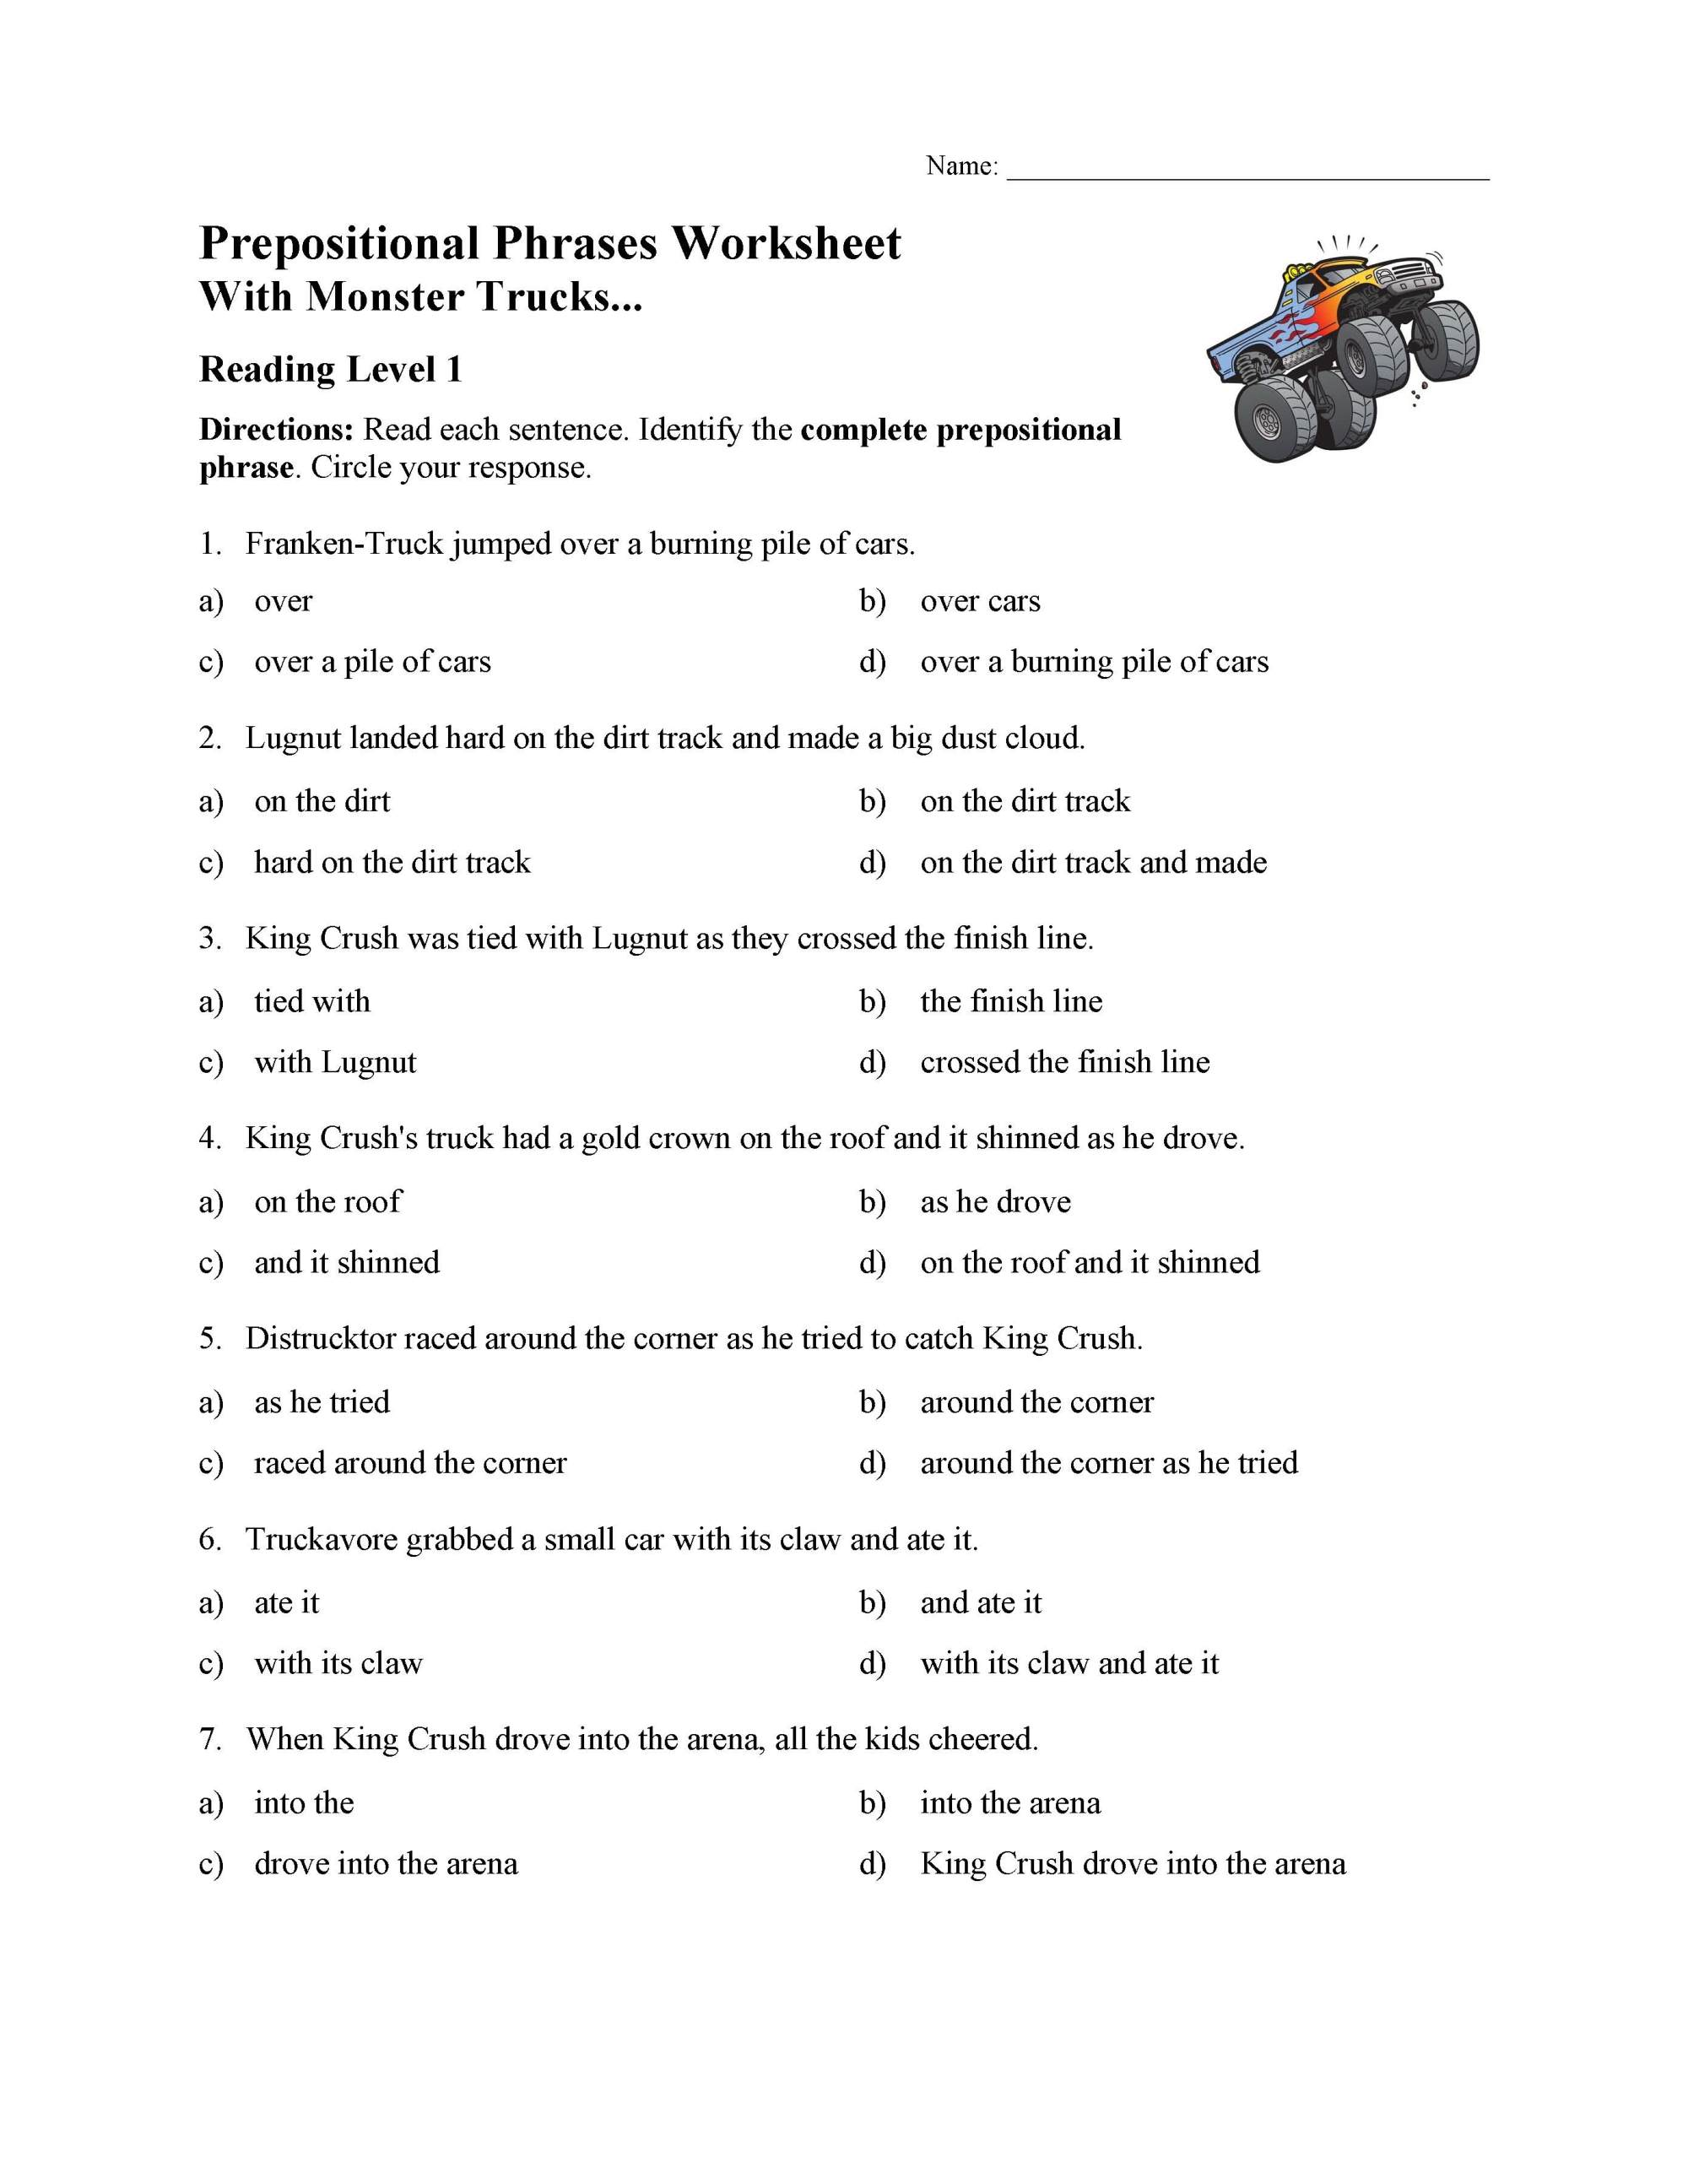 hight resolution of Prepositional Phrases Worksheet 1 - Reading Level 1   Preview